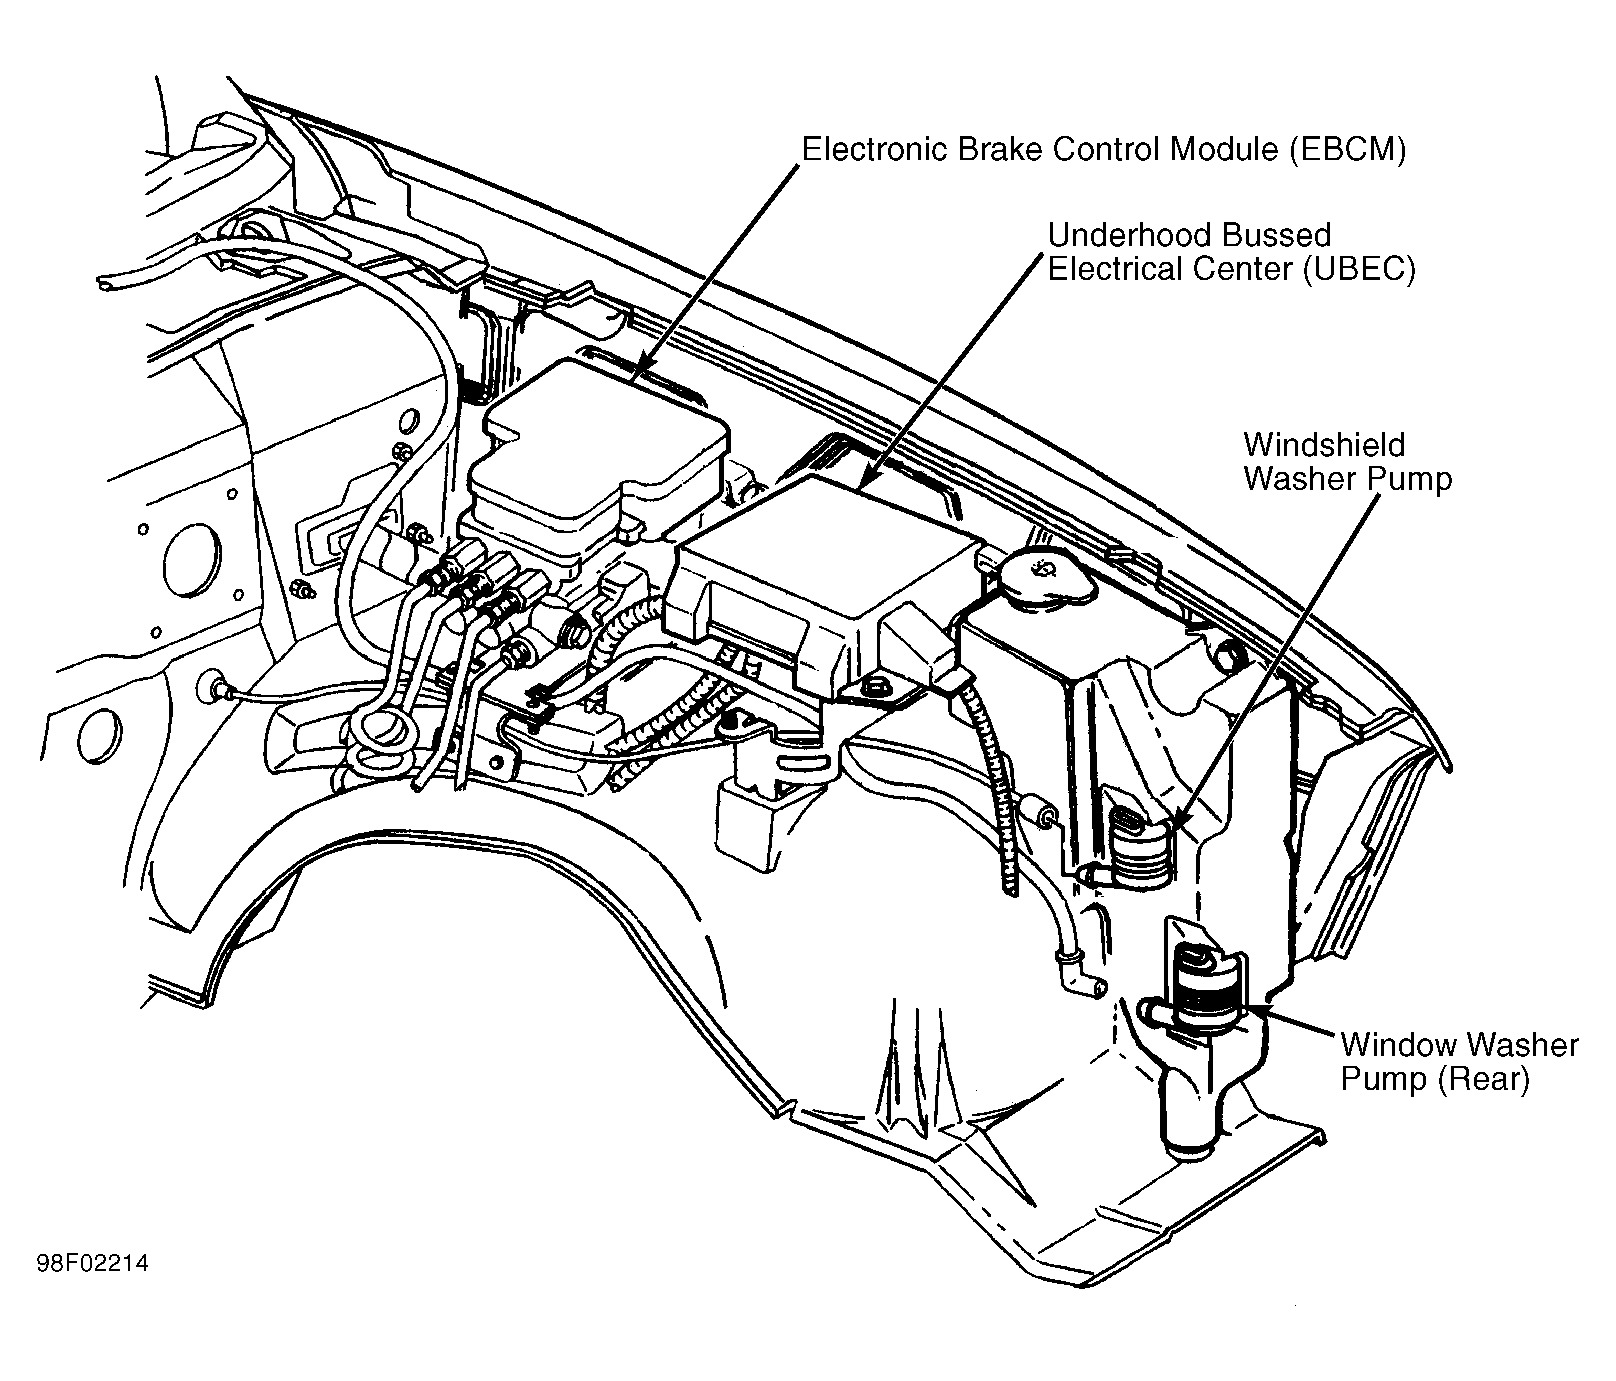 1991 gmc vandura wiring diagram